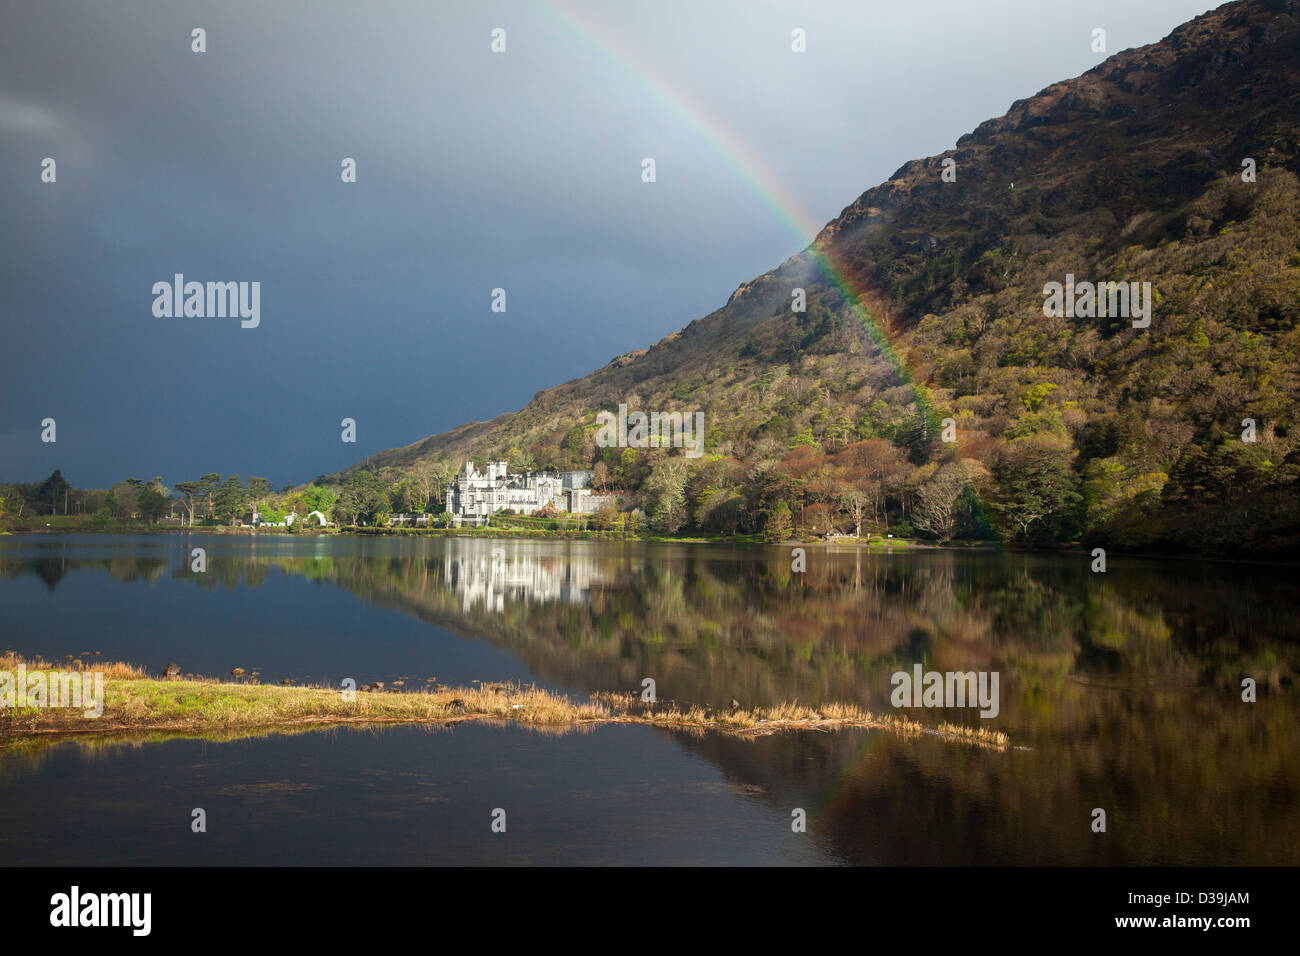 Rainbow over Kylemore Abbey, Connemara, County Galway, Ireland. - Stock Image